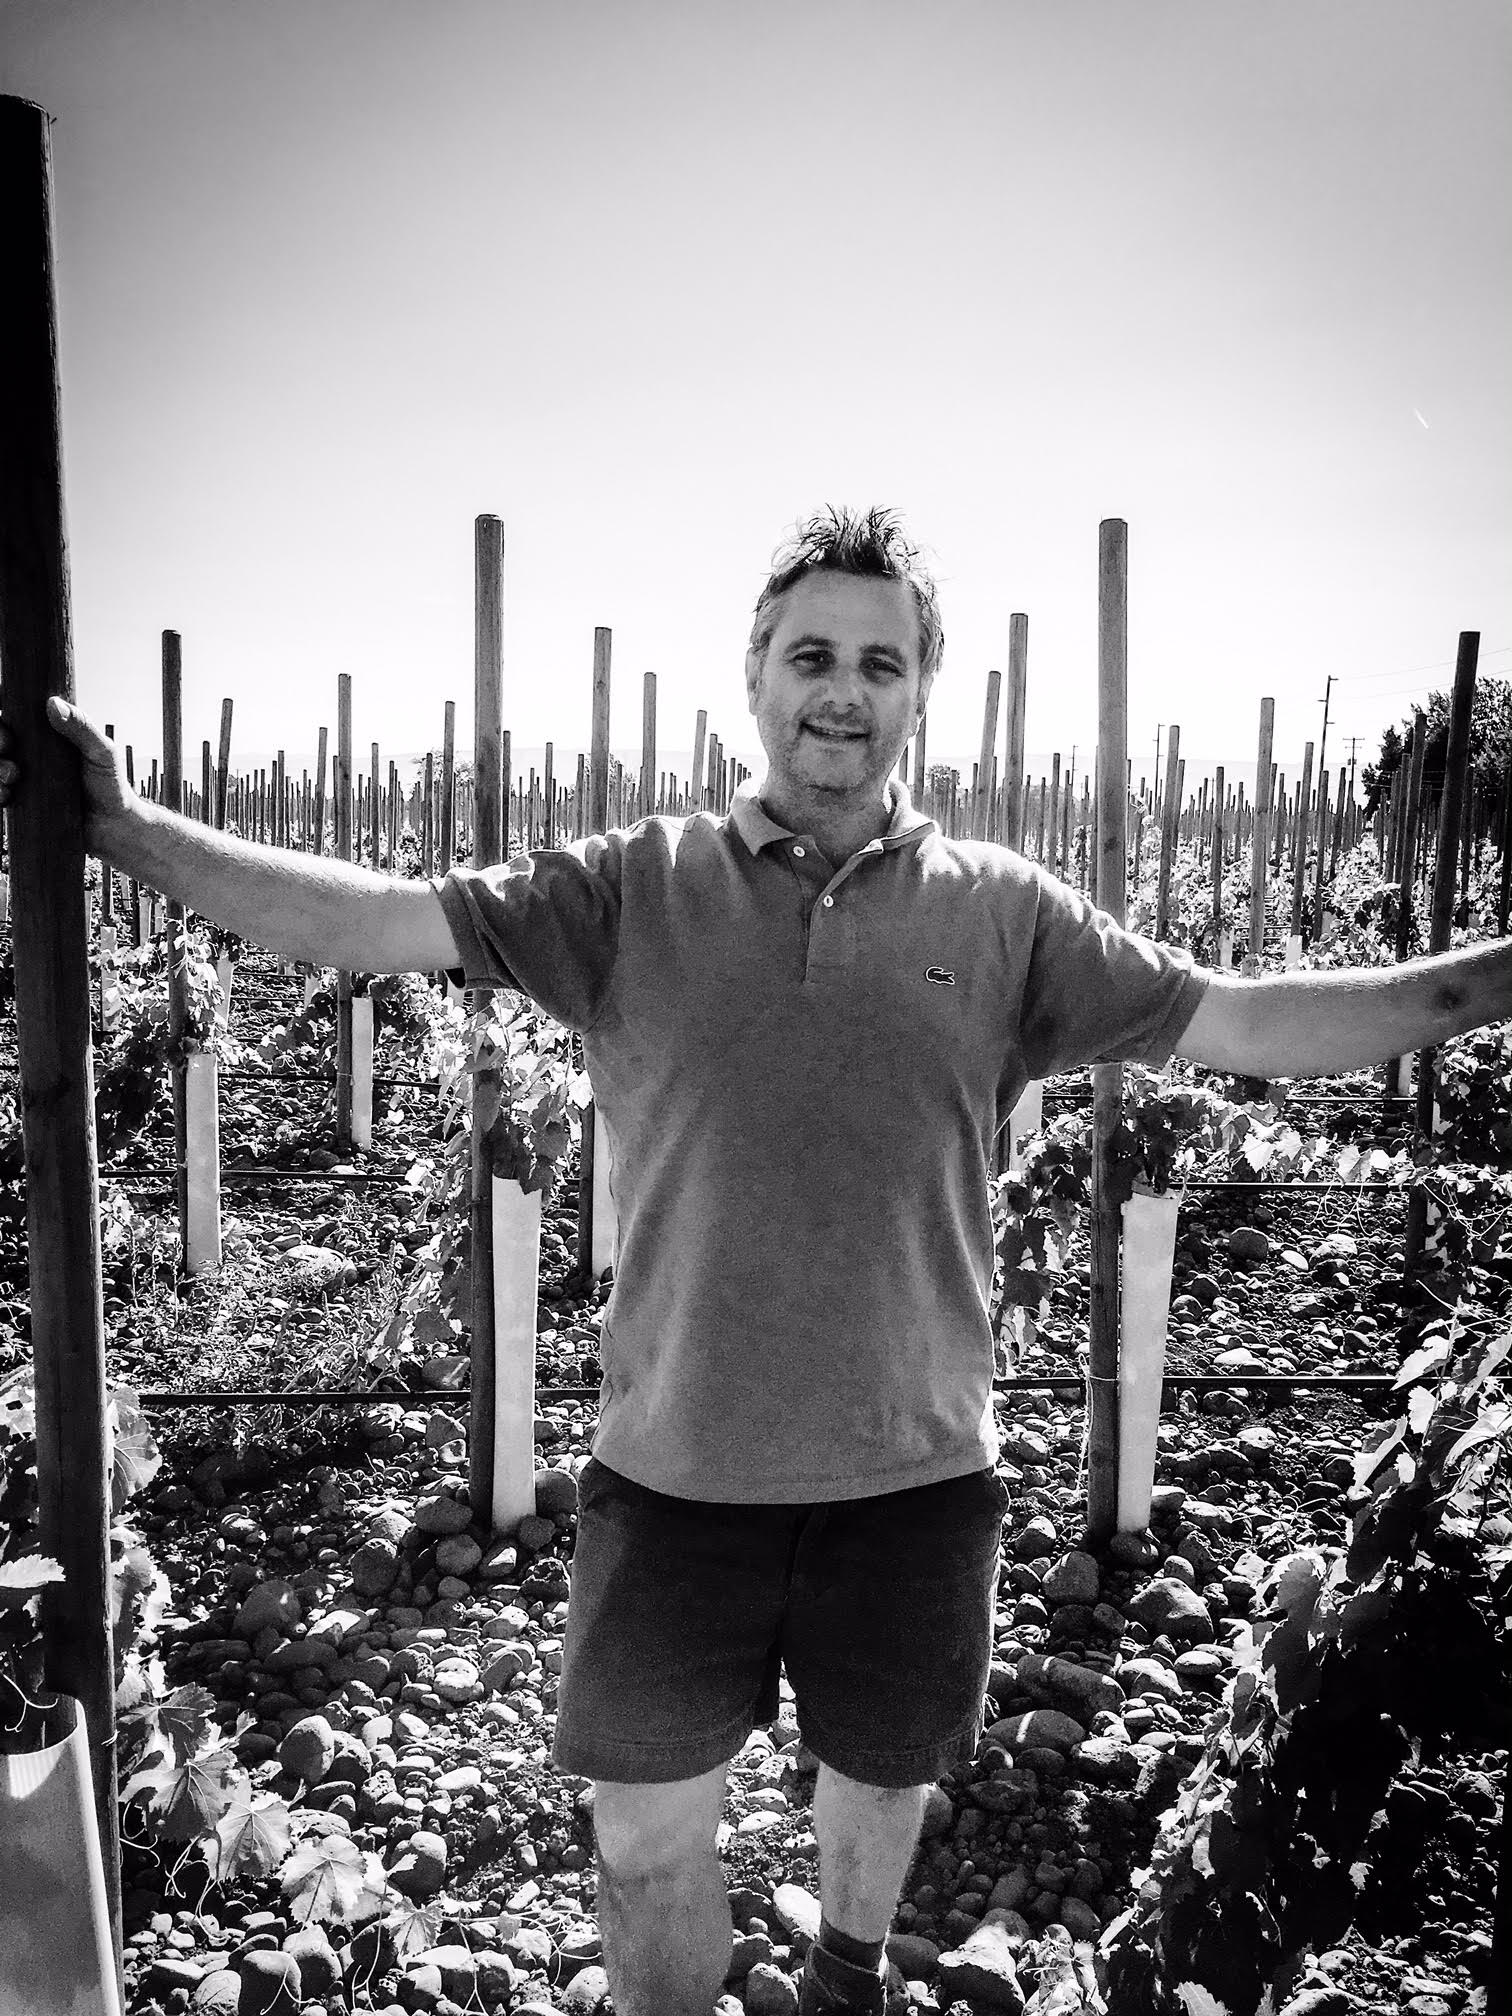 Walla Walla wine pioneer, Christophe Baron, of Cayuse Vineyards, has crafted a scintillating lineup of wines and is the well-deserved recipient 2017 Washington Wine Blog Winery of the Year.